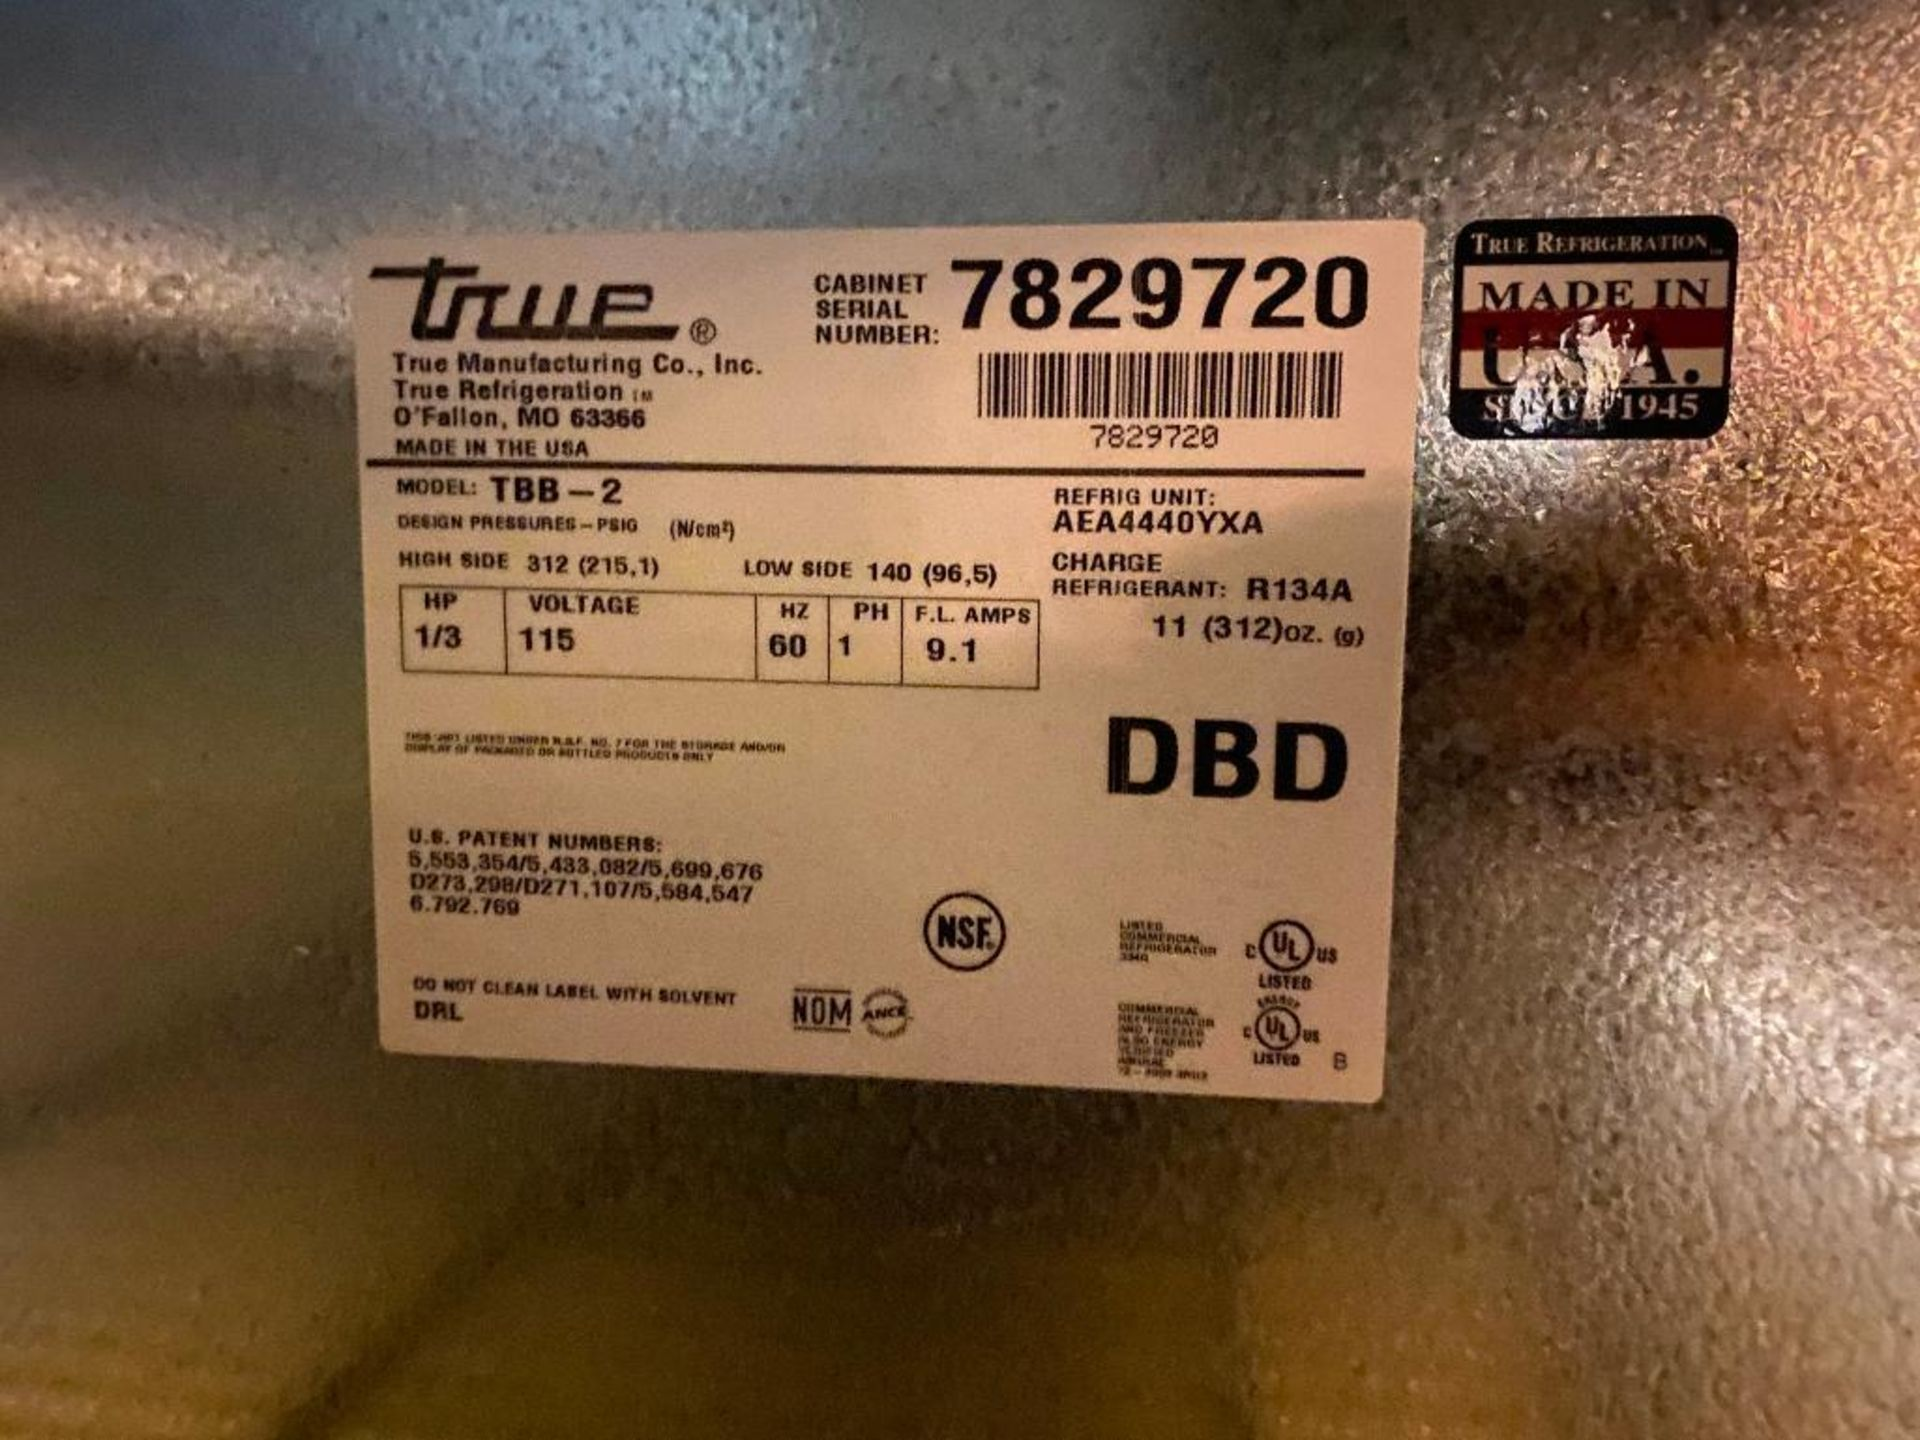 "TRUE TBB-2 59"" 2 DOOR SOLID BACK BAR REFRIGERATOR - NOTE: REQUIRES REMOVAL FROM UNDER BAR, PLEASE IN - Image 4 of 4"